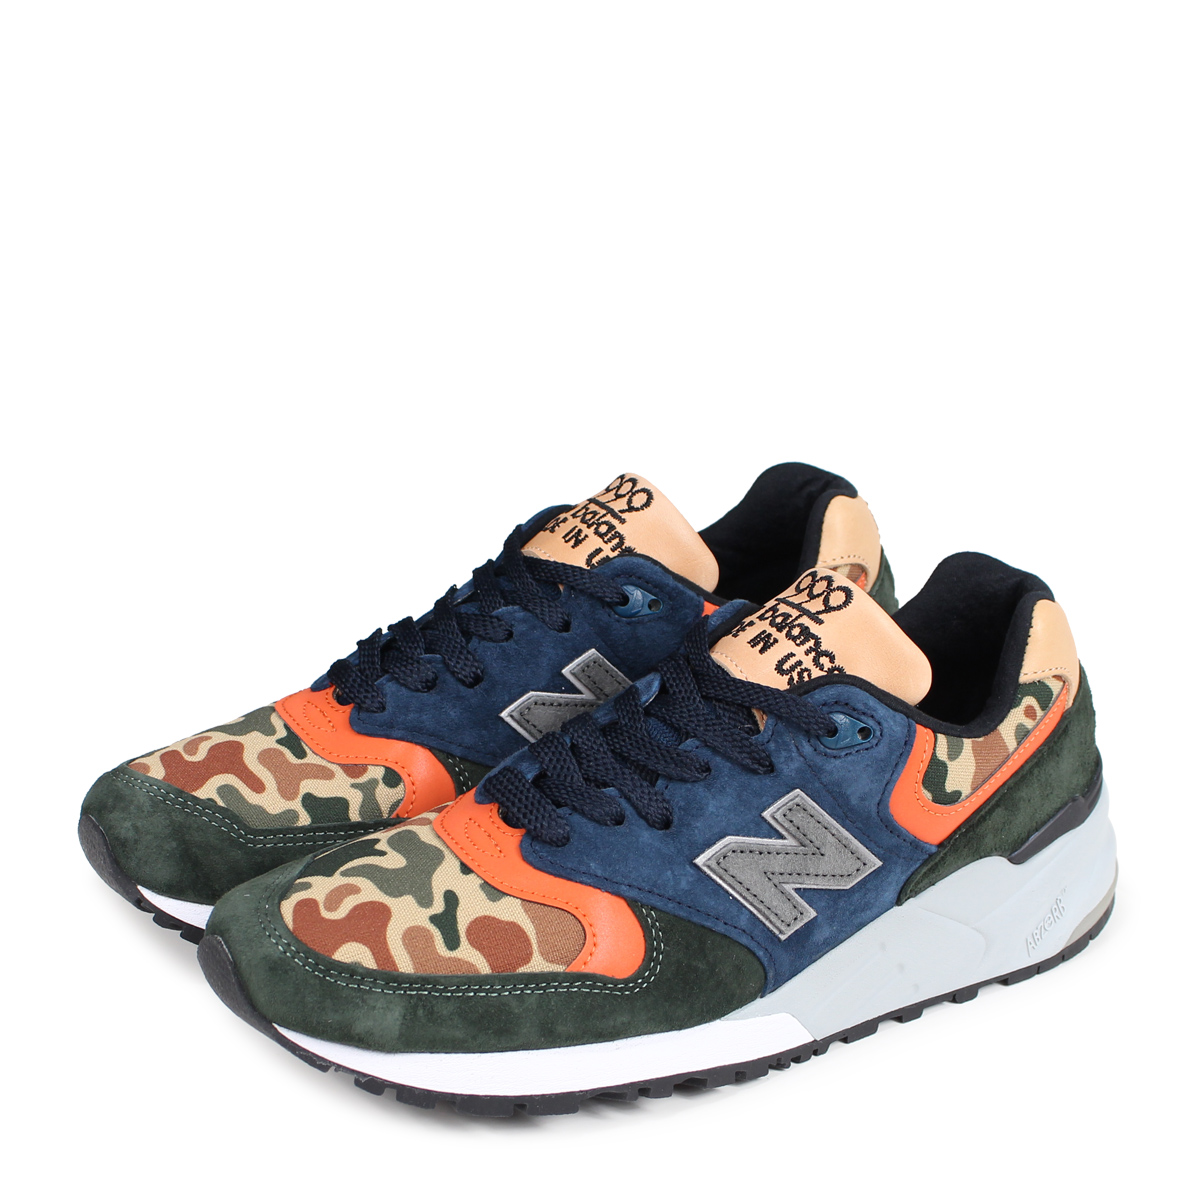 new balance M999NI New Balance 999 men's sneakers D Wise MADE IN USA duck [195]